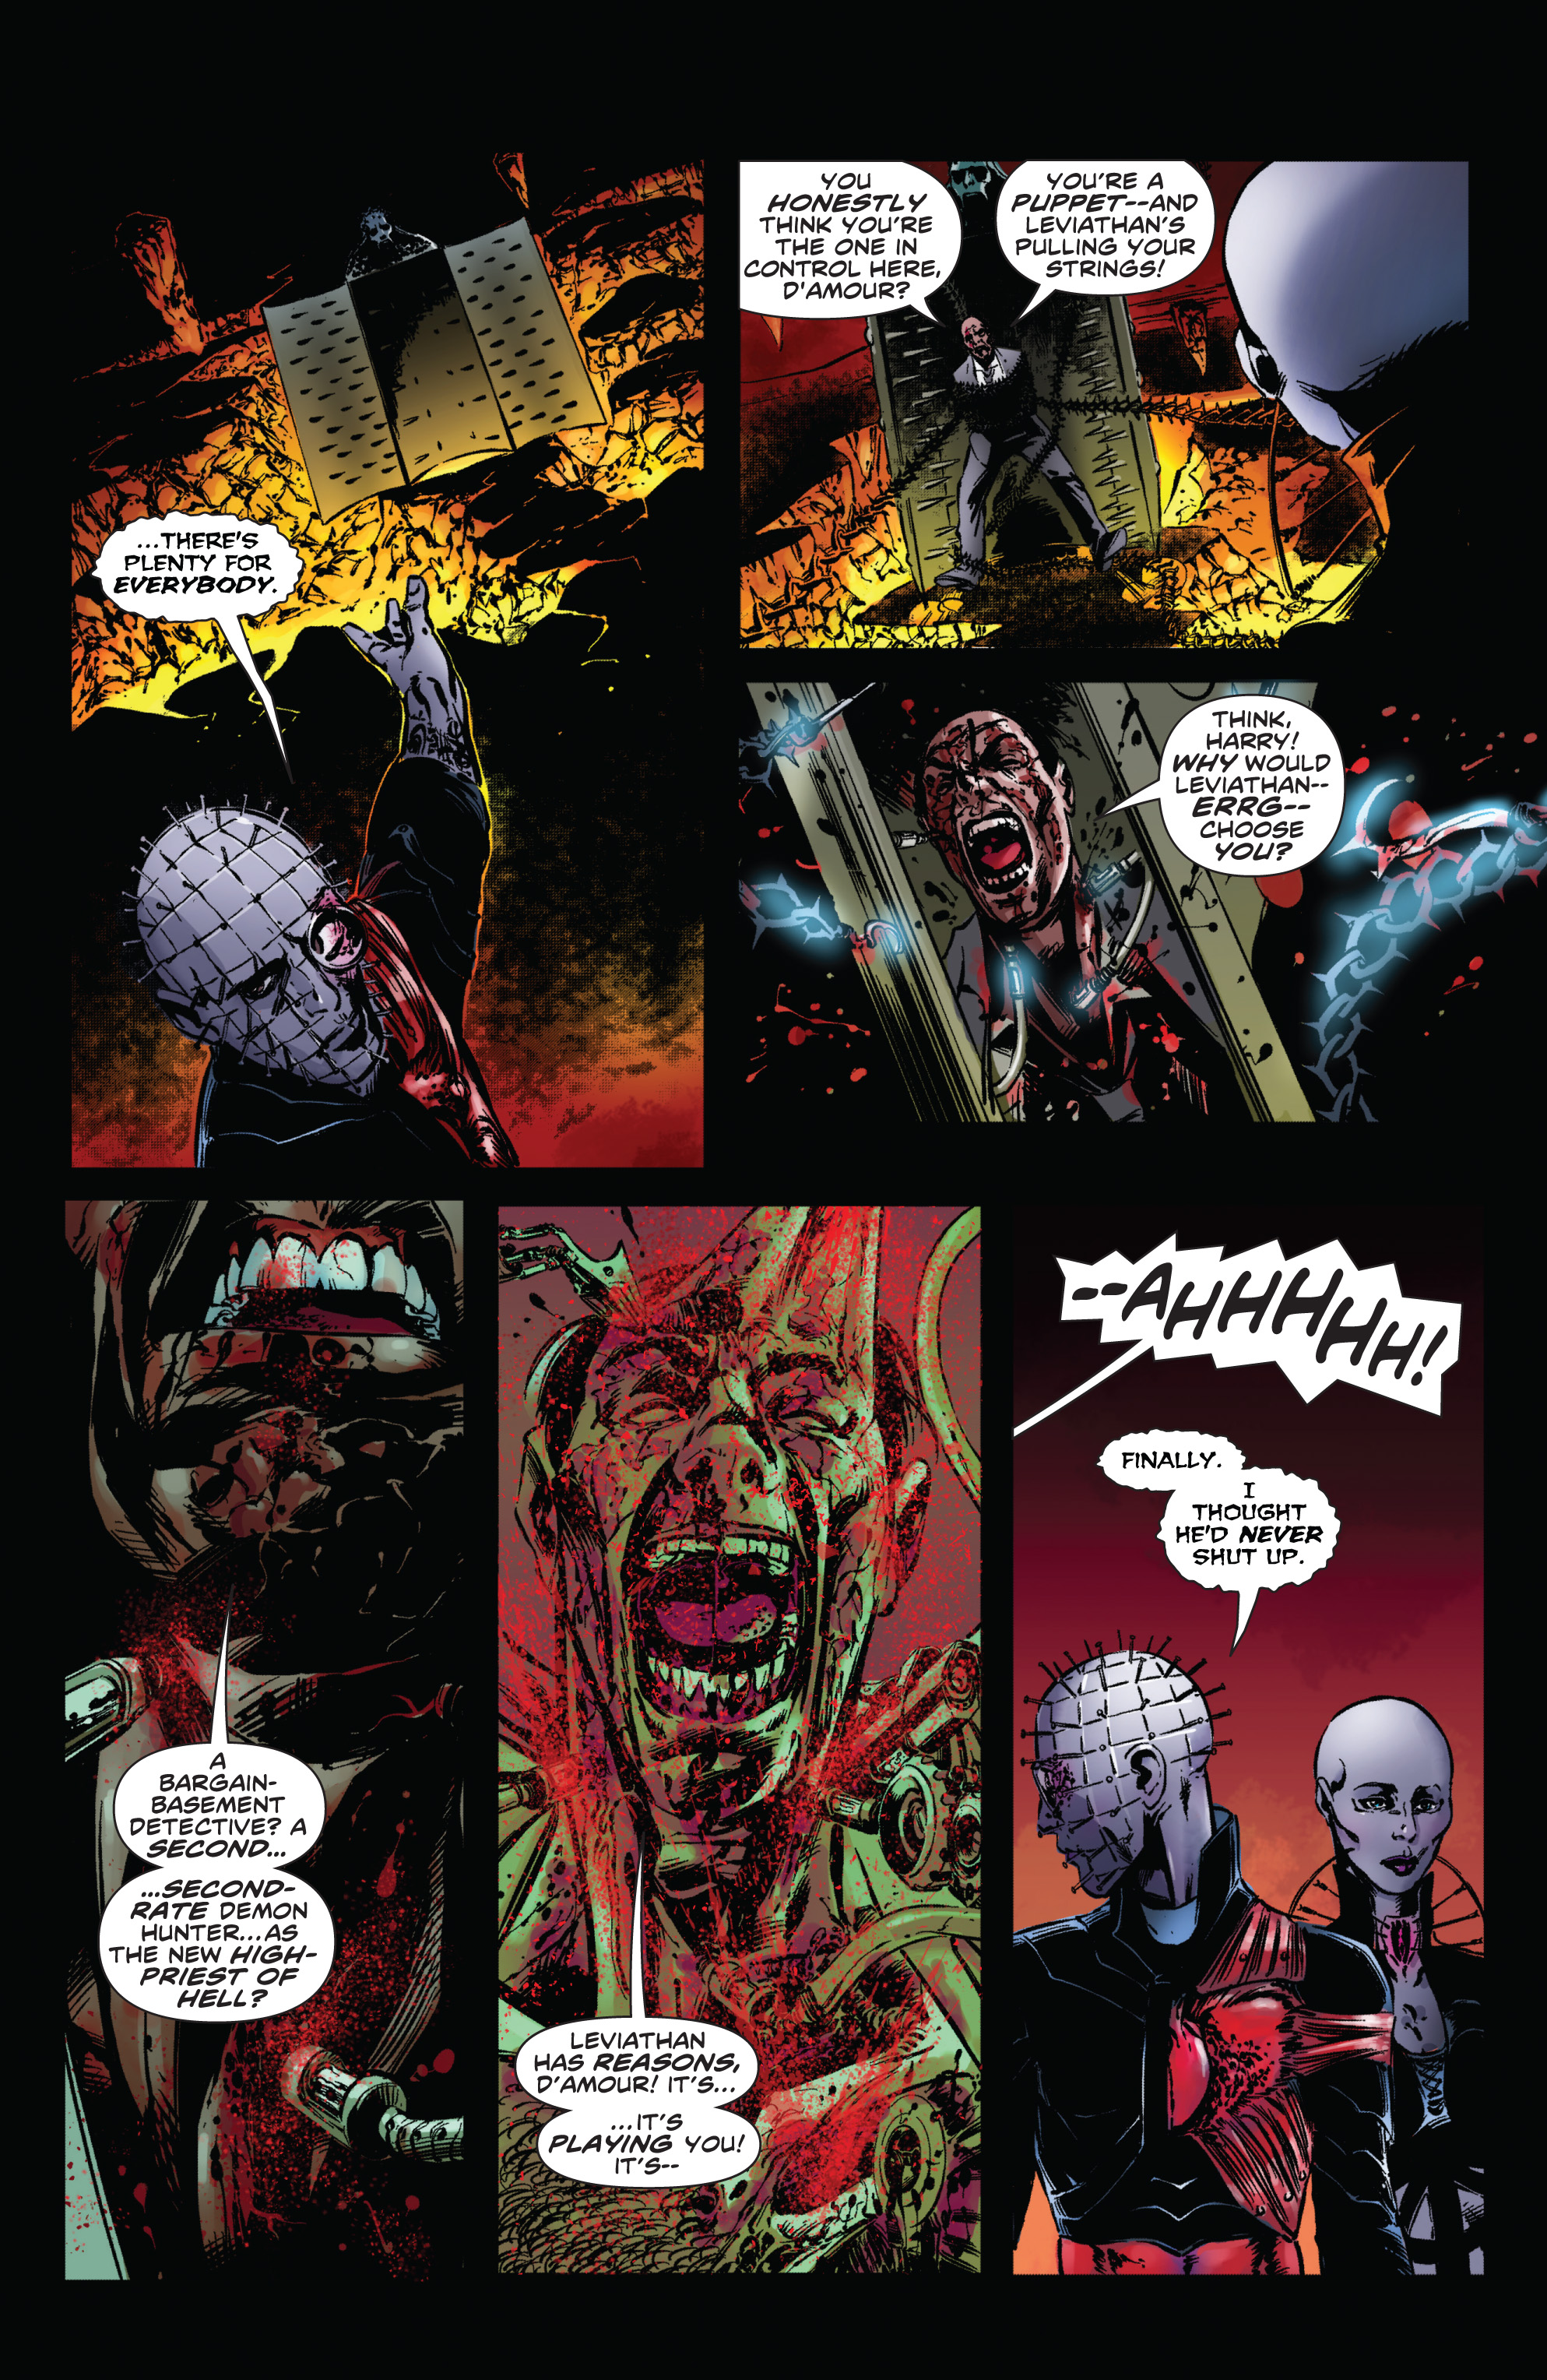 Read online Clive Barker's Hellraiser: The Dark Watch comic -  Issue # TPB 1 - 23